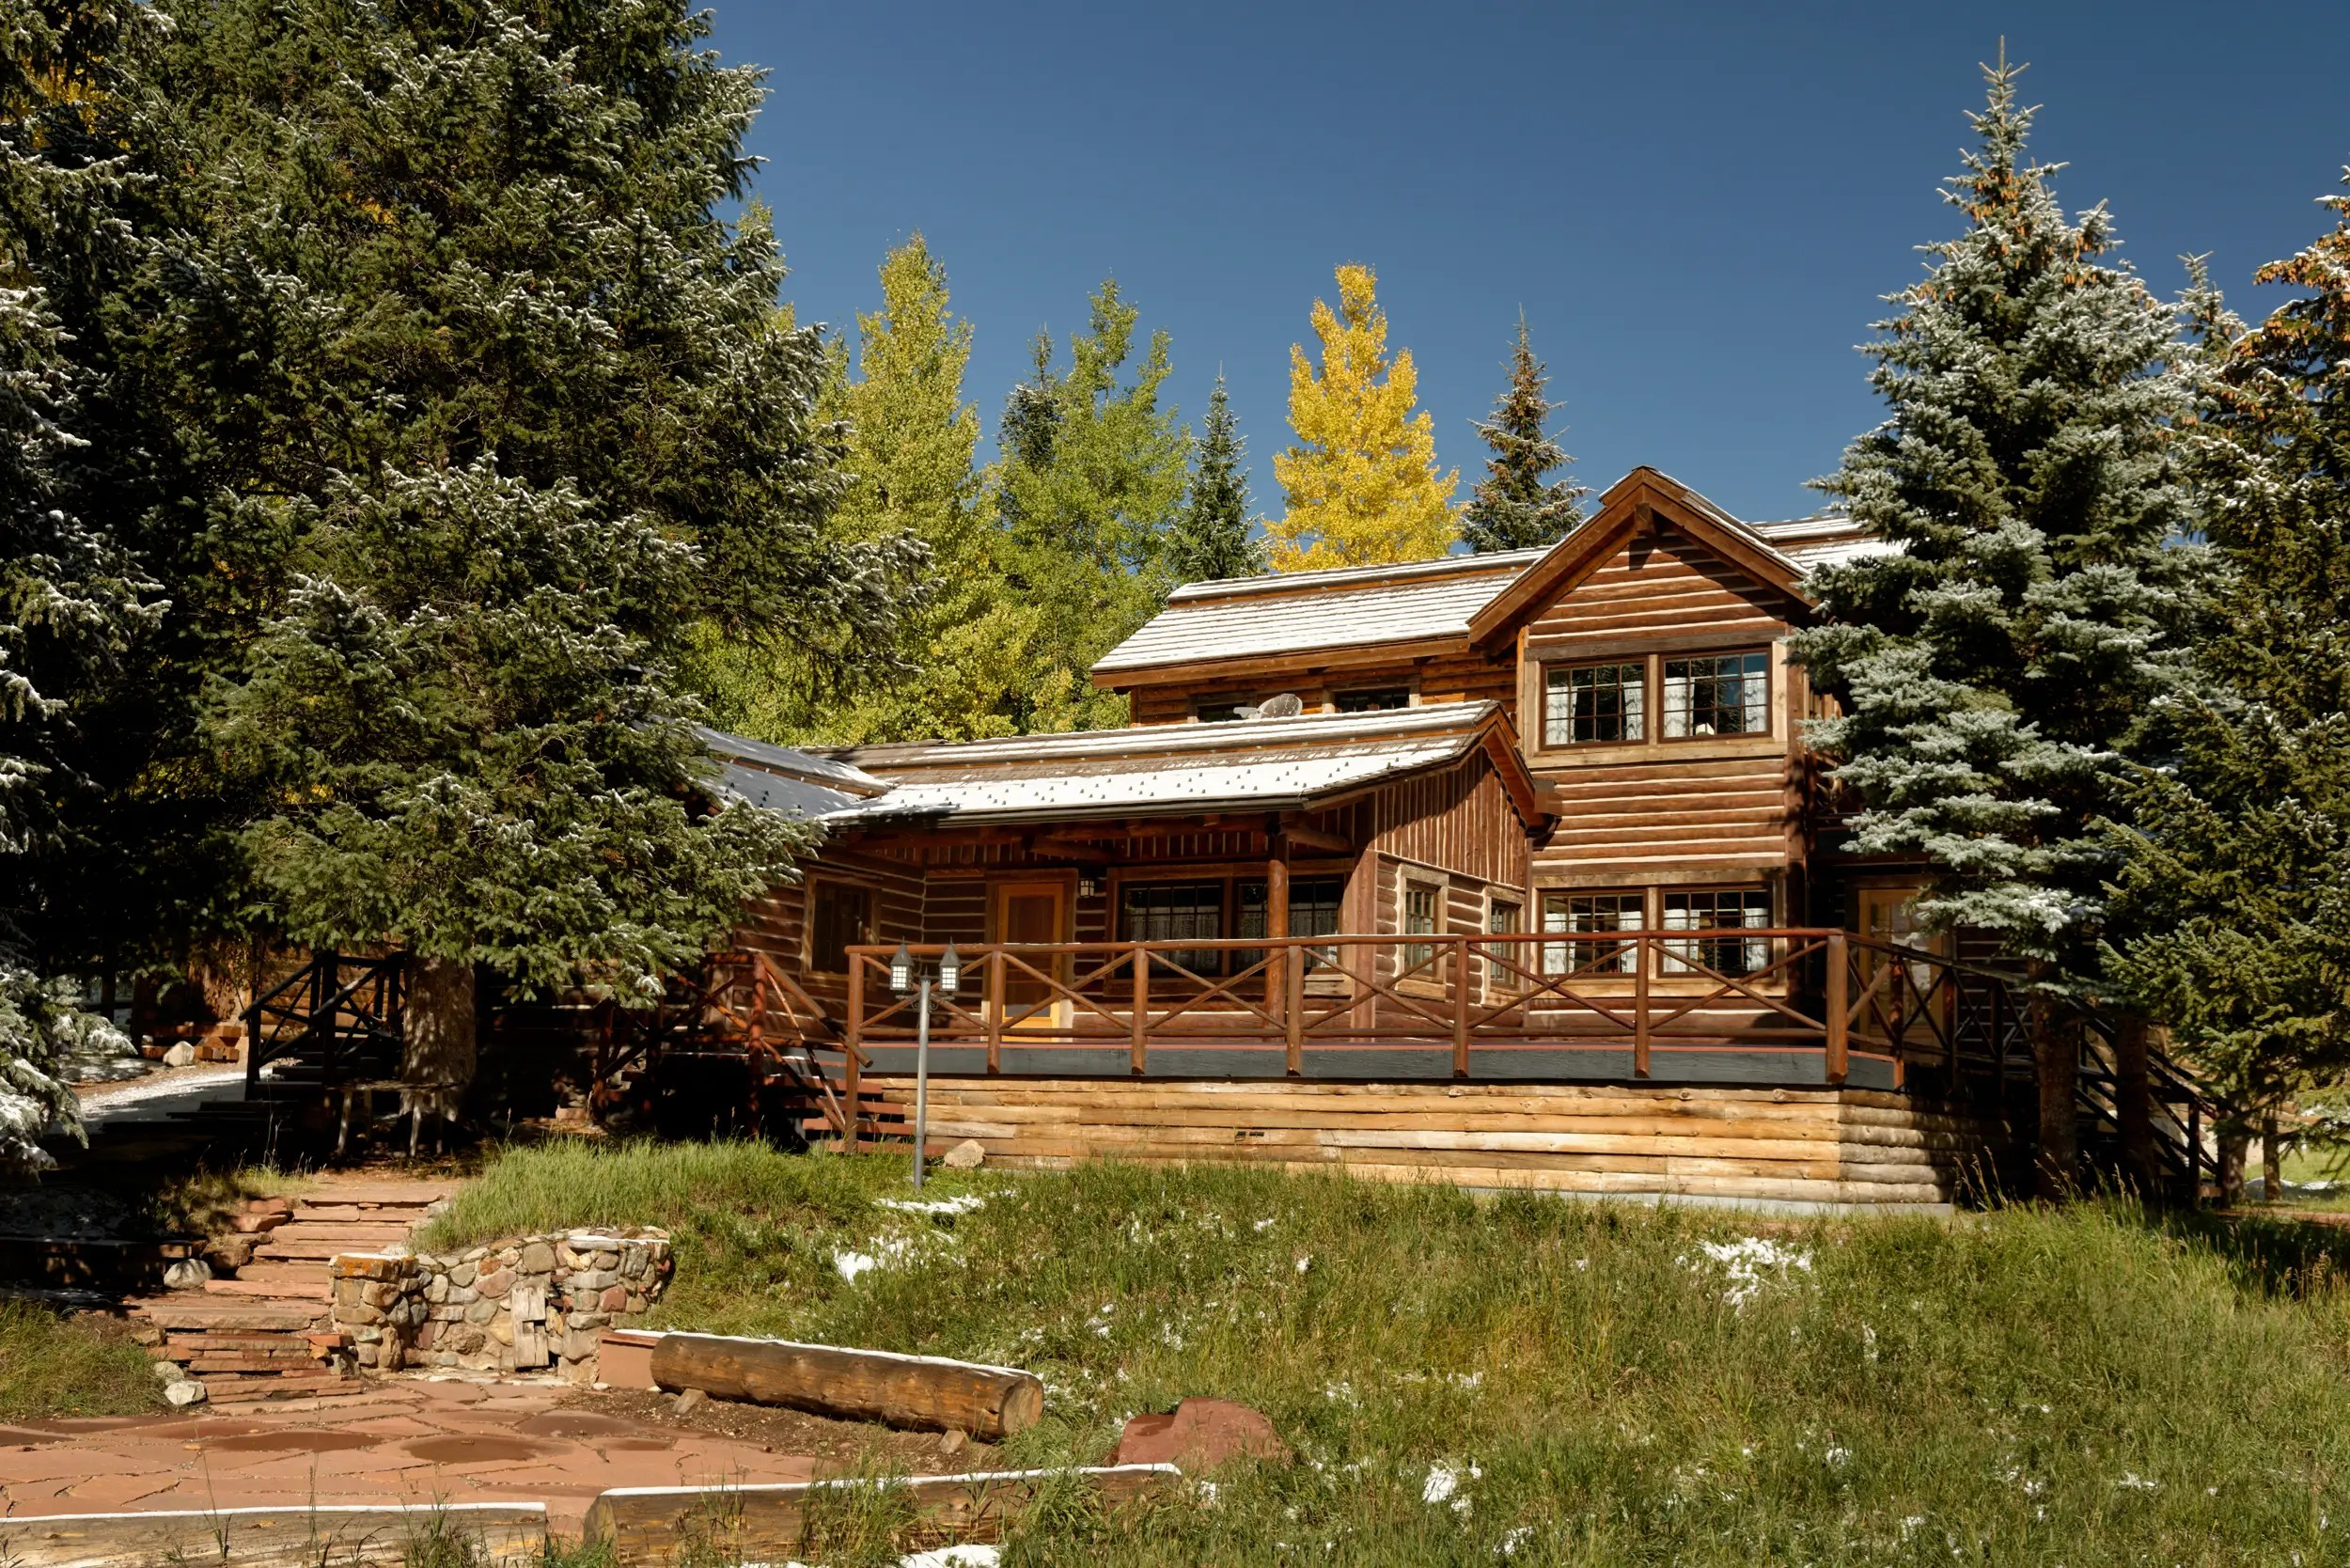 One of the residences is the American Lake log cabin; it's on offer with the main parcel for $60 million. The property manager currently calls the three-bedroom cabin home.